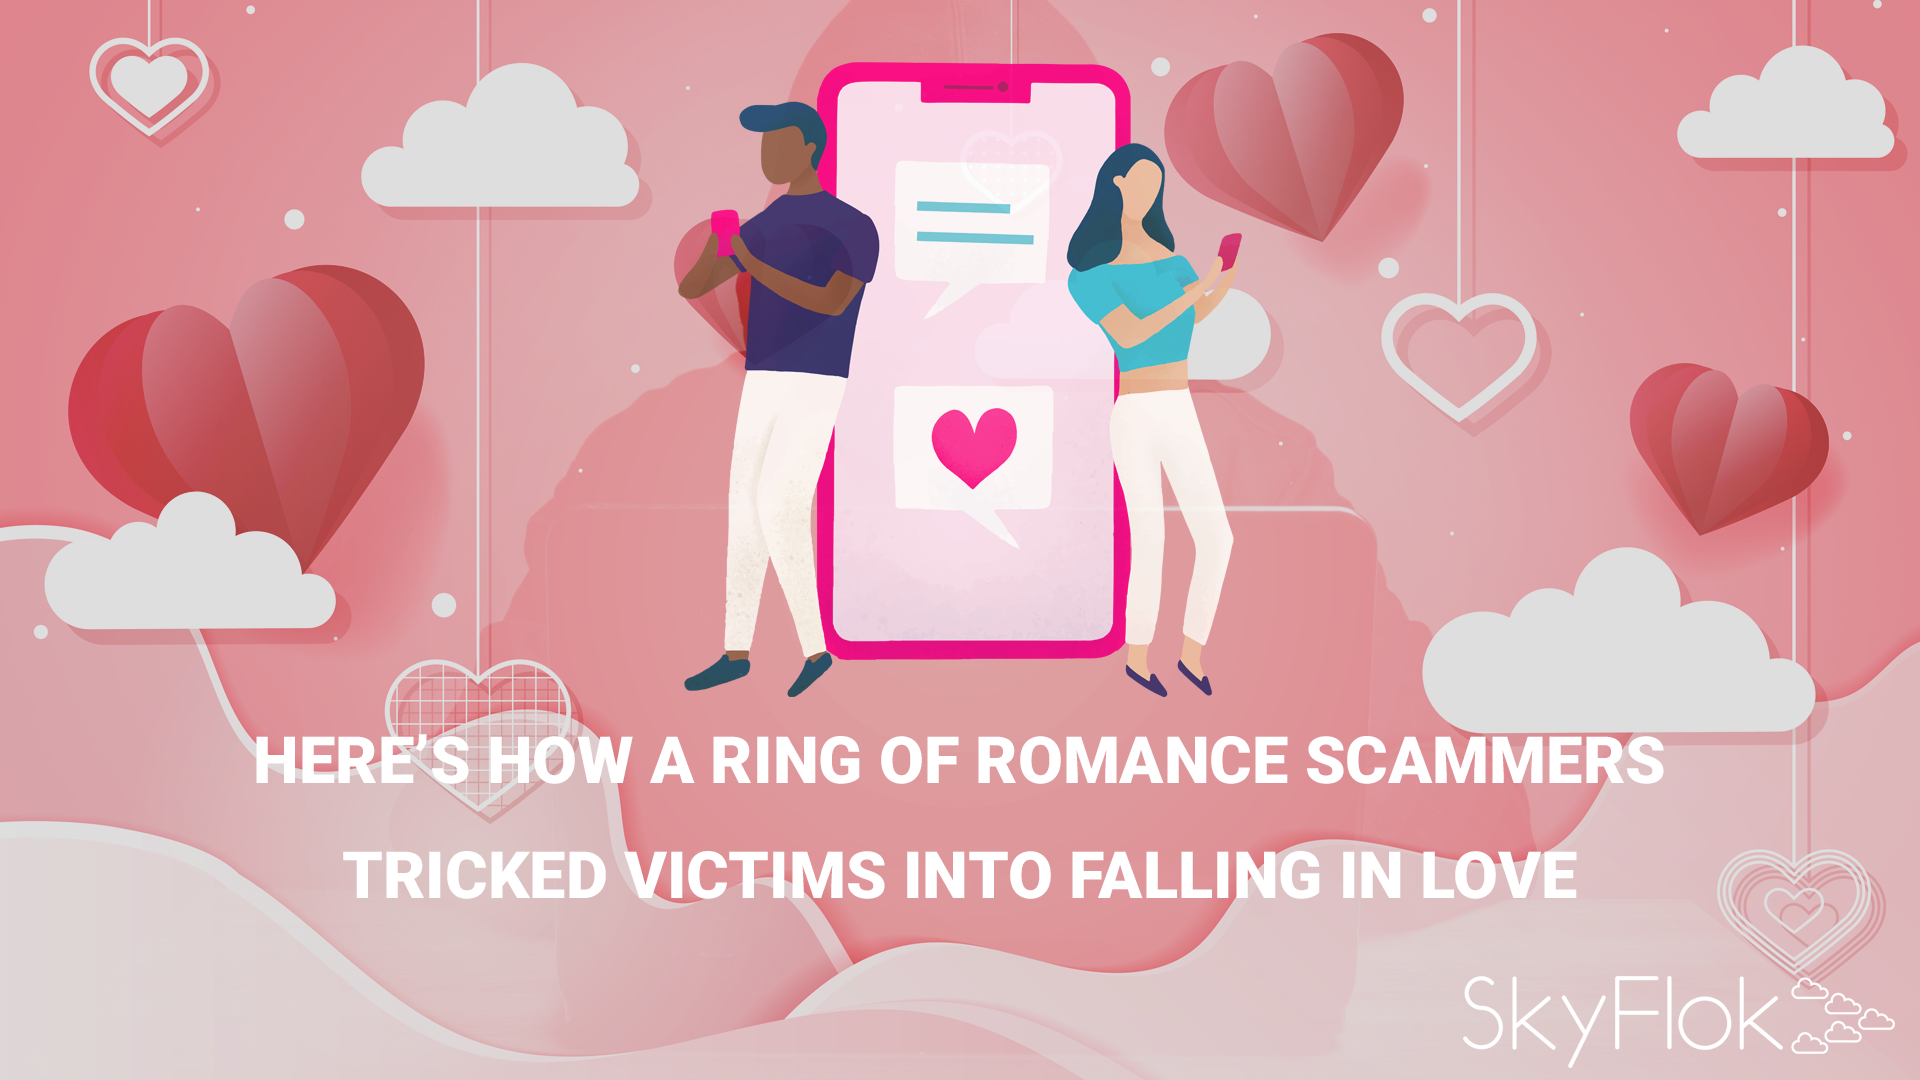 Here's how a ring of romance scammers tricked victims into falling in love